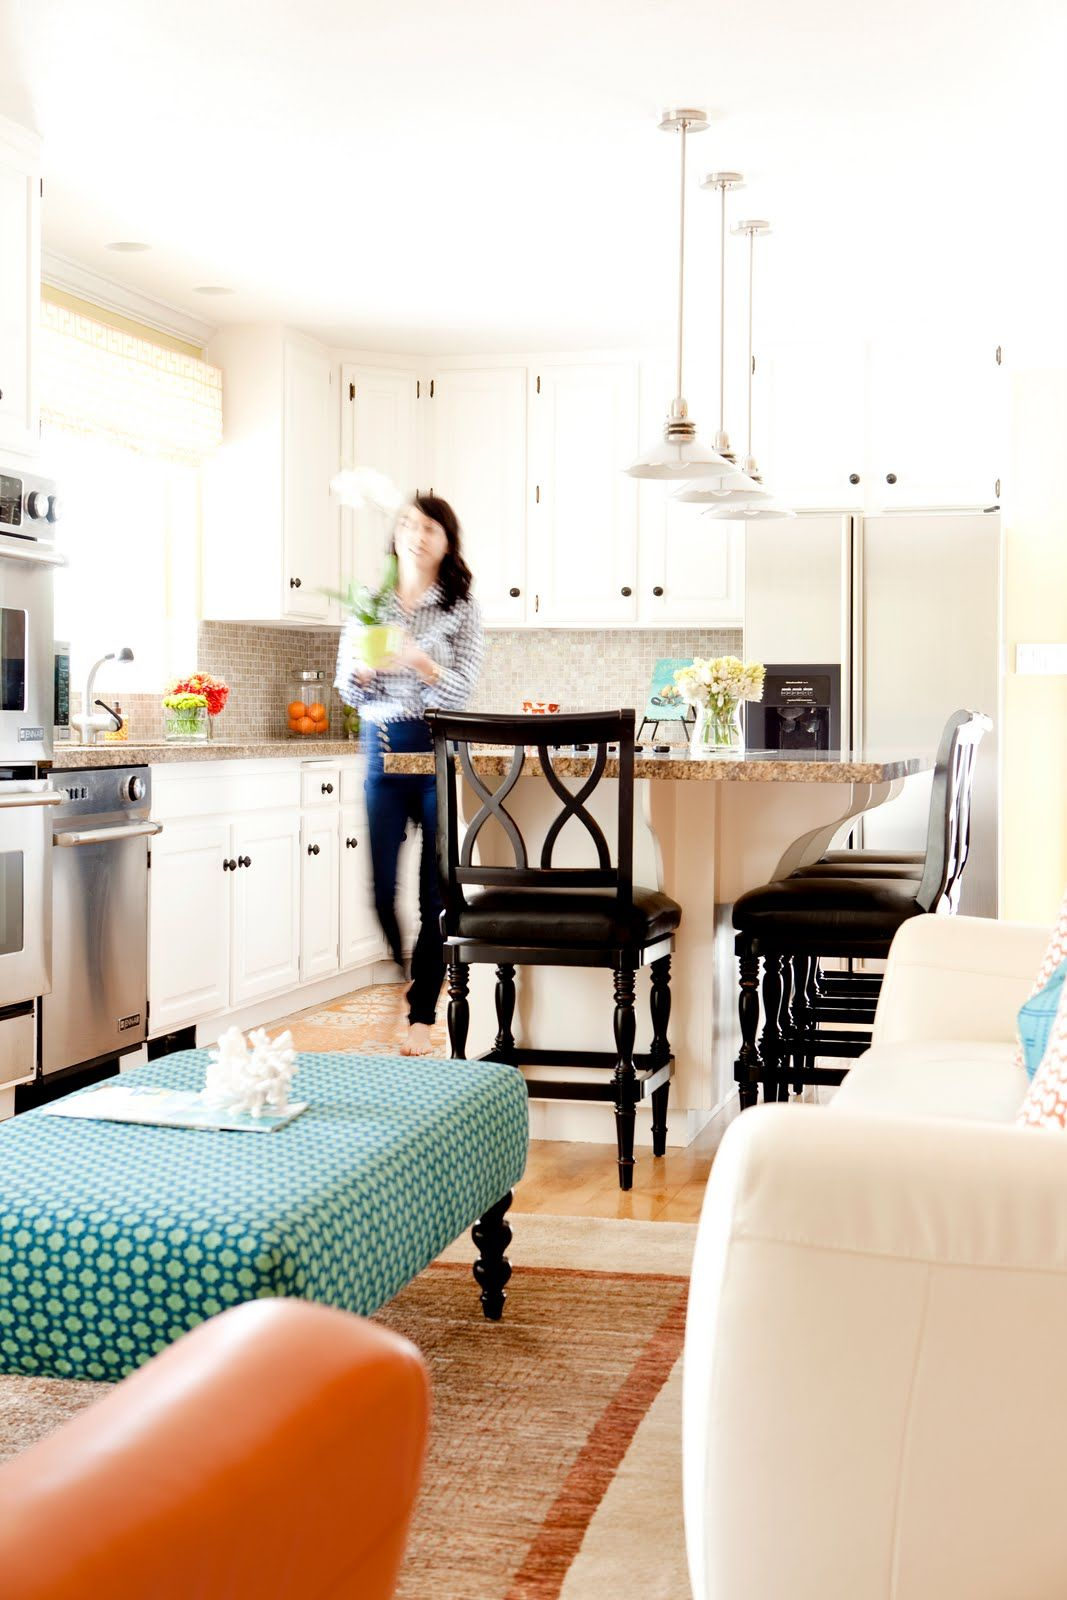 Kitchen Sitting Rooms Designs: Love This Room - More White Kitchen Cabinets. :)